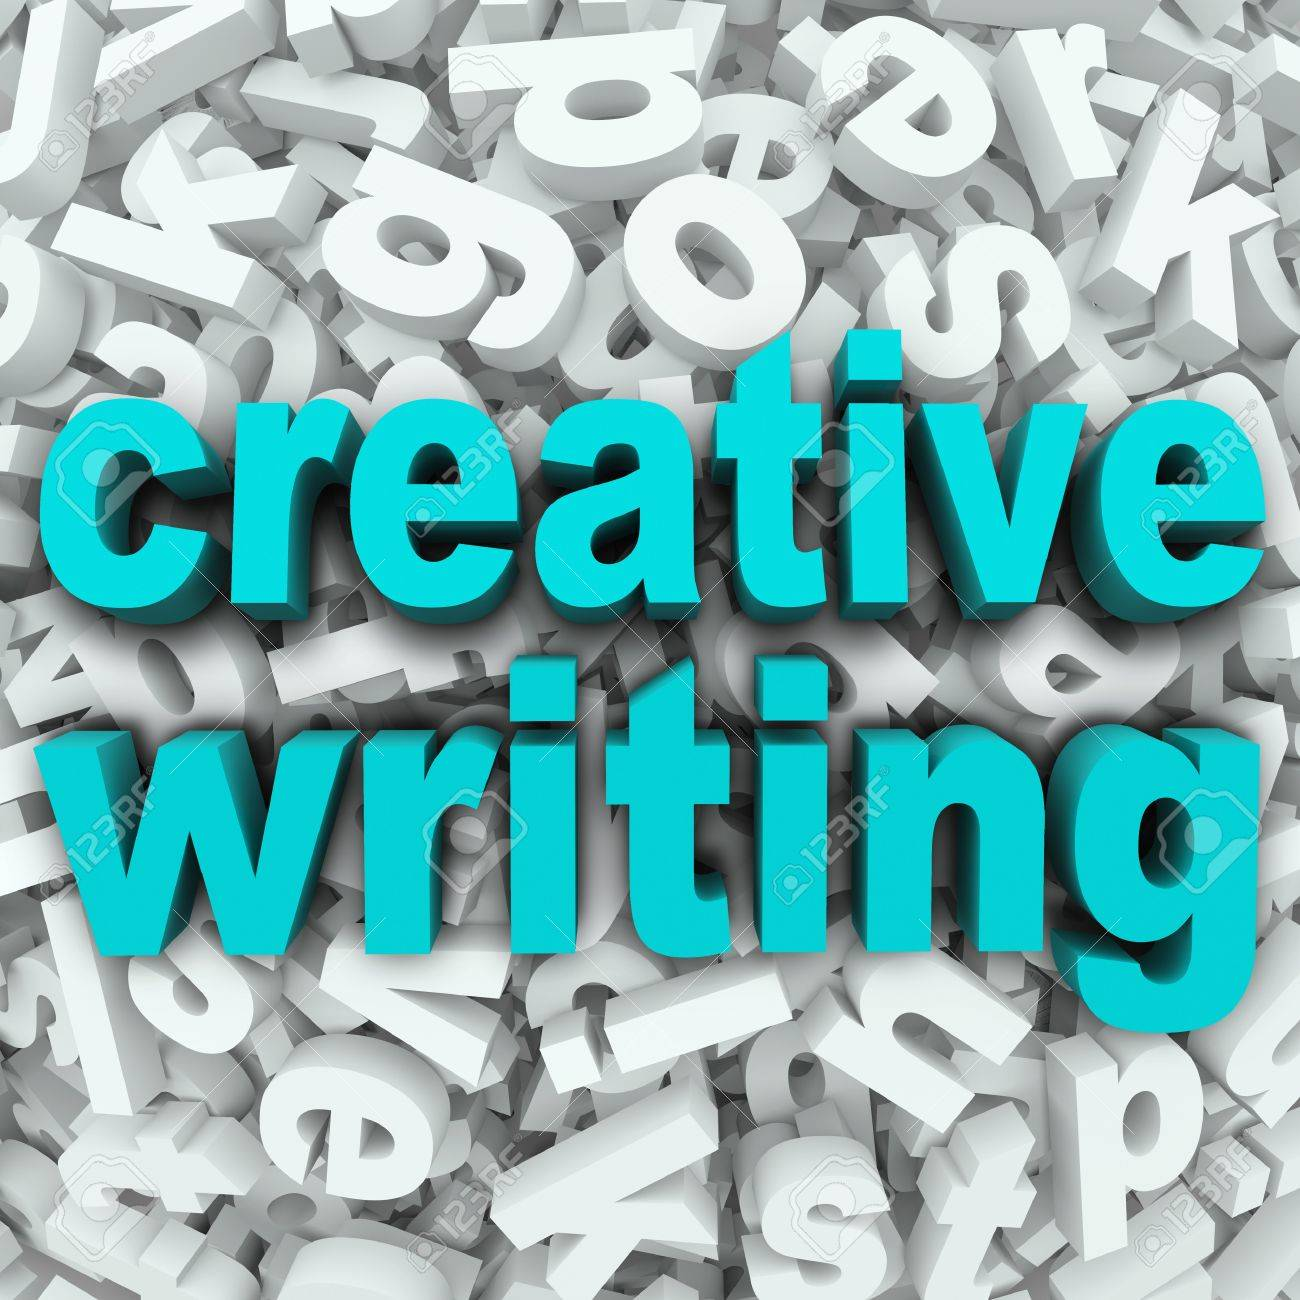 The Words Creative Writing On A 3d Background Of Random Letters